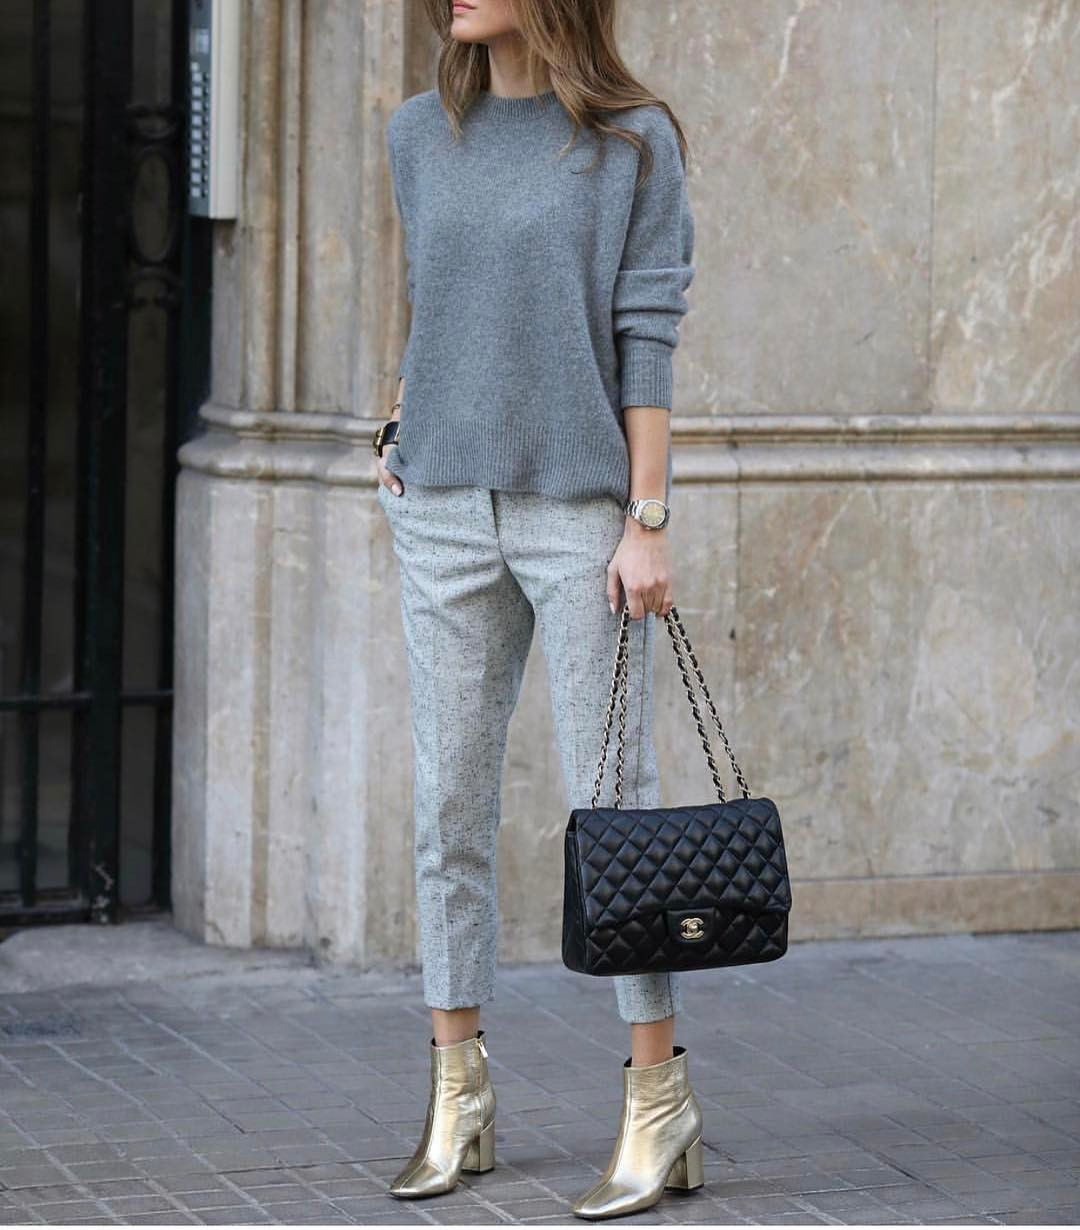 Can I Wear Metallic Gold Ankle Boots With Grey Monochrome Basics 2019